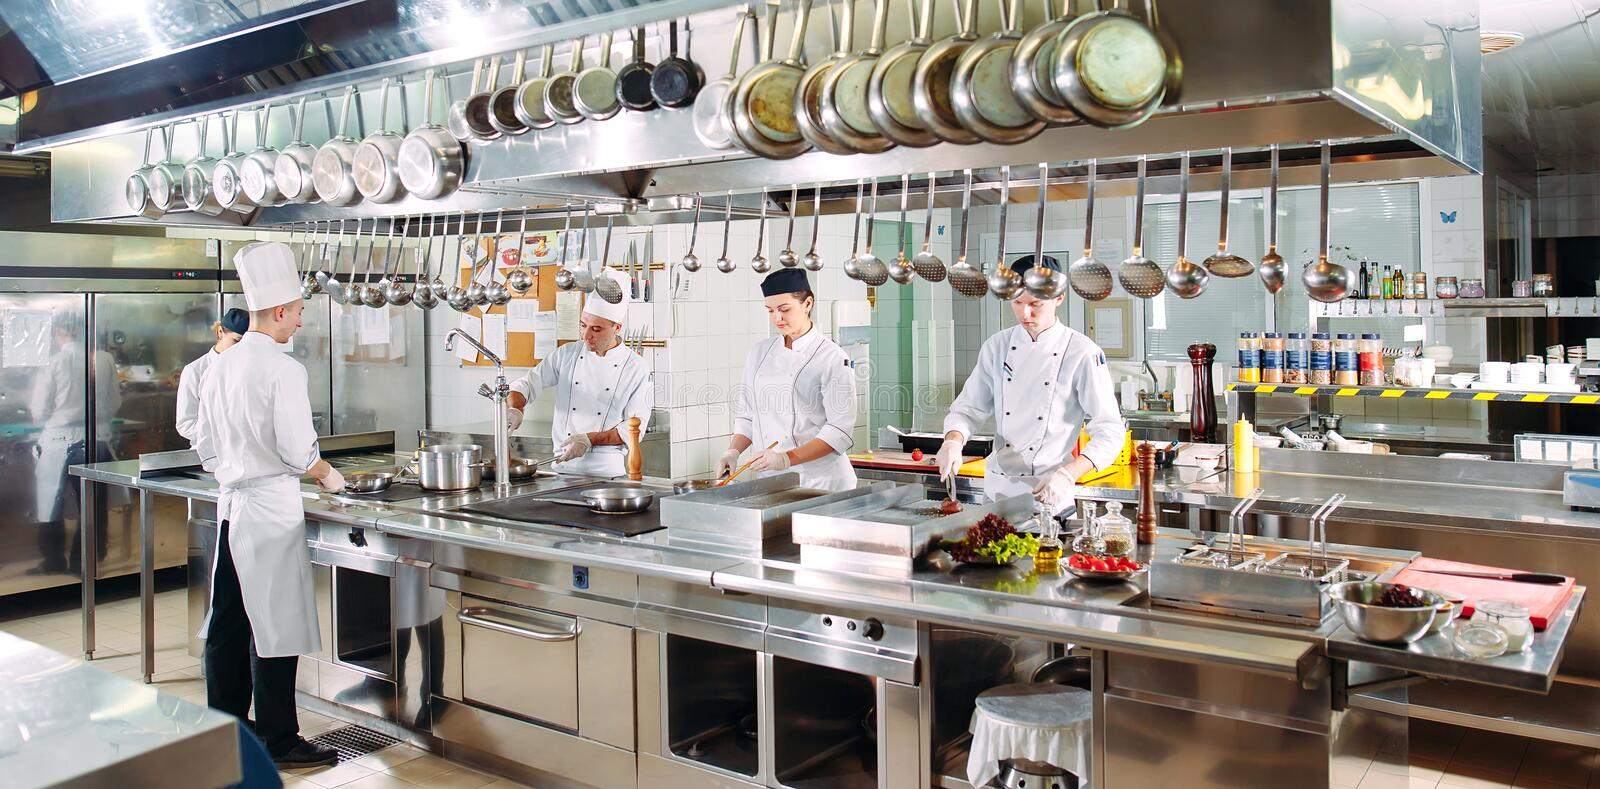 Modern kitchen. Cooks prepare meals on the stove in the kitchen of the restaurant or hotel. The fire in the kitchen. Modern kitchen. Cooks prepare meals on the stock photography